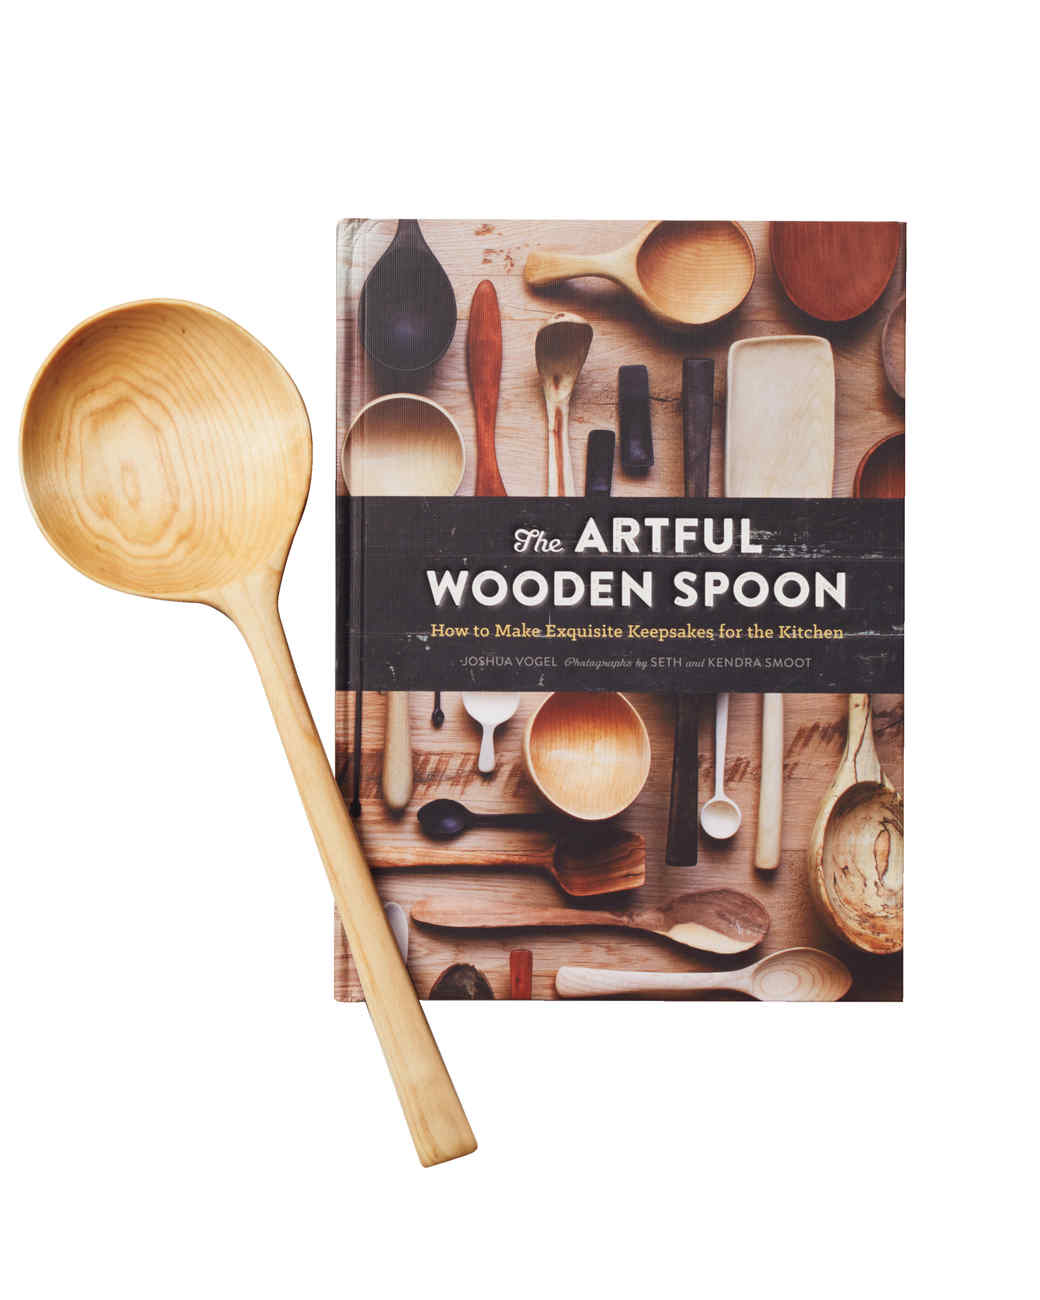 book-with-spoon-134-d112494.jpg